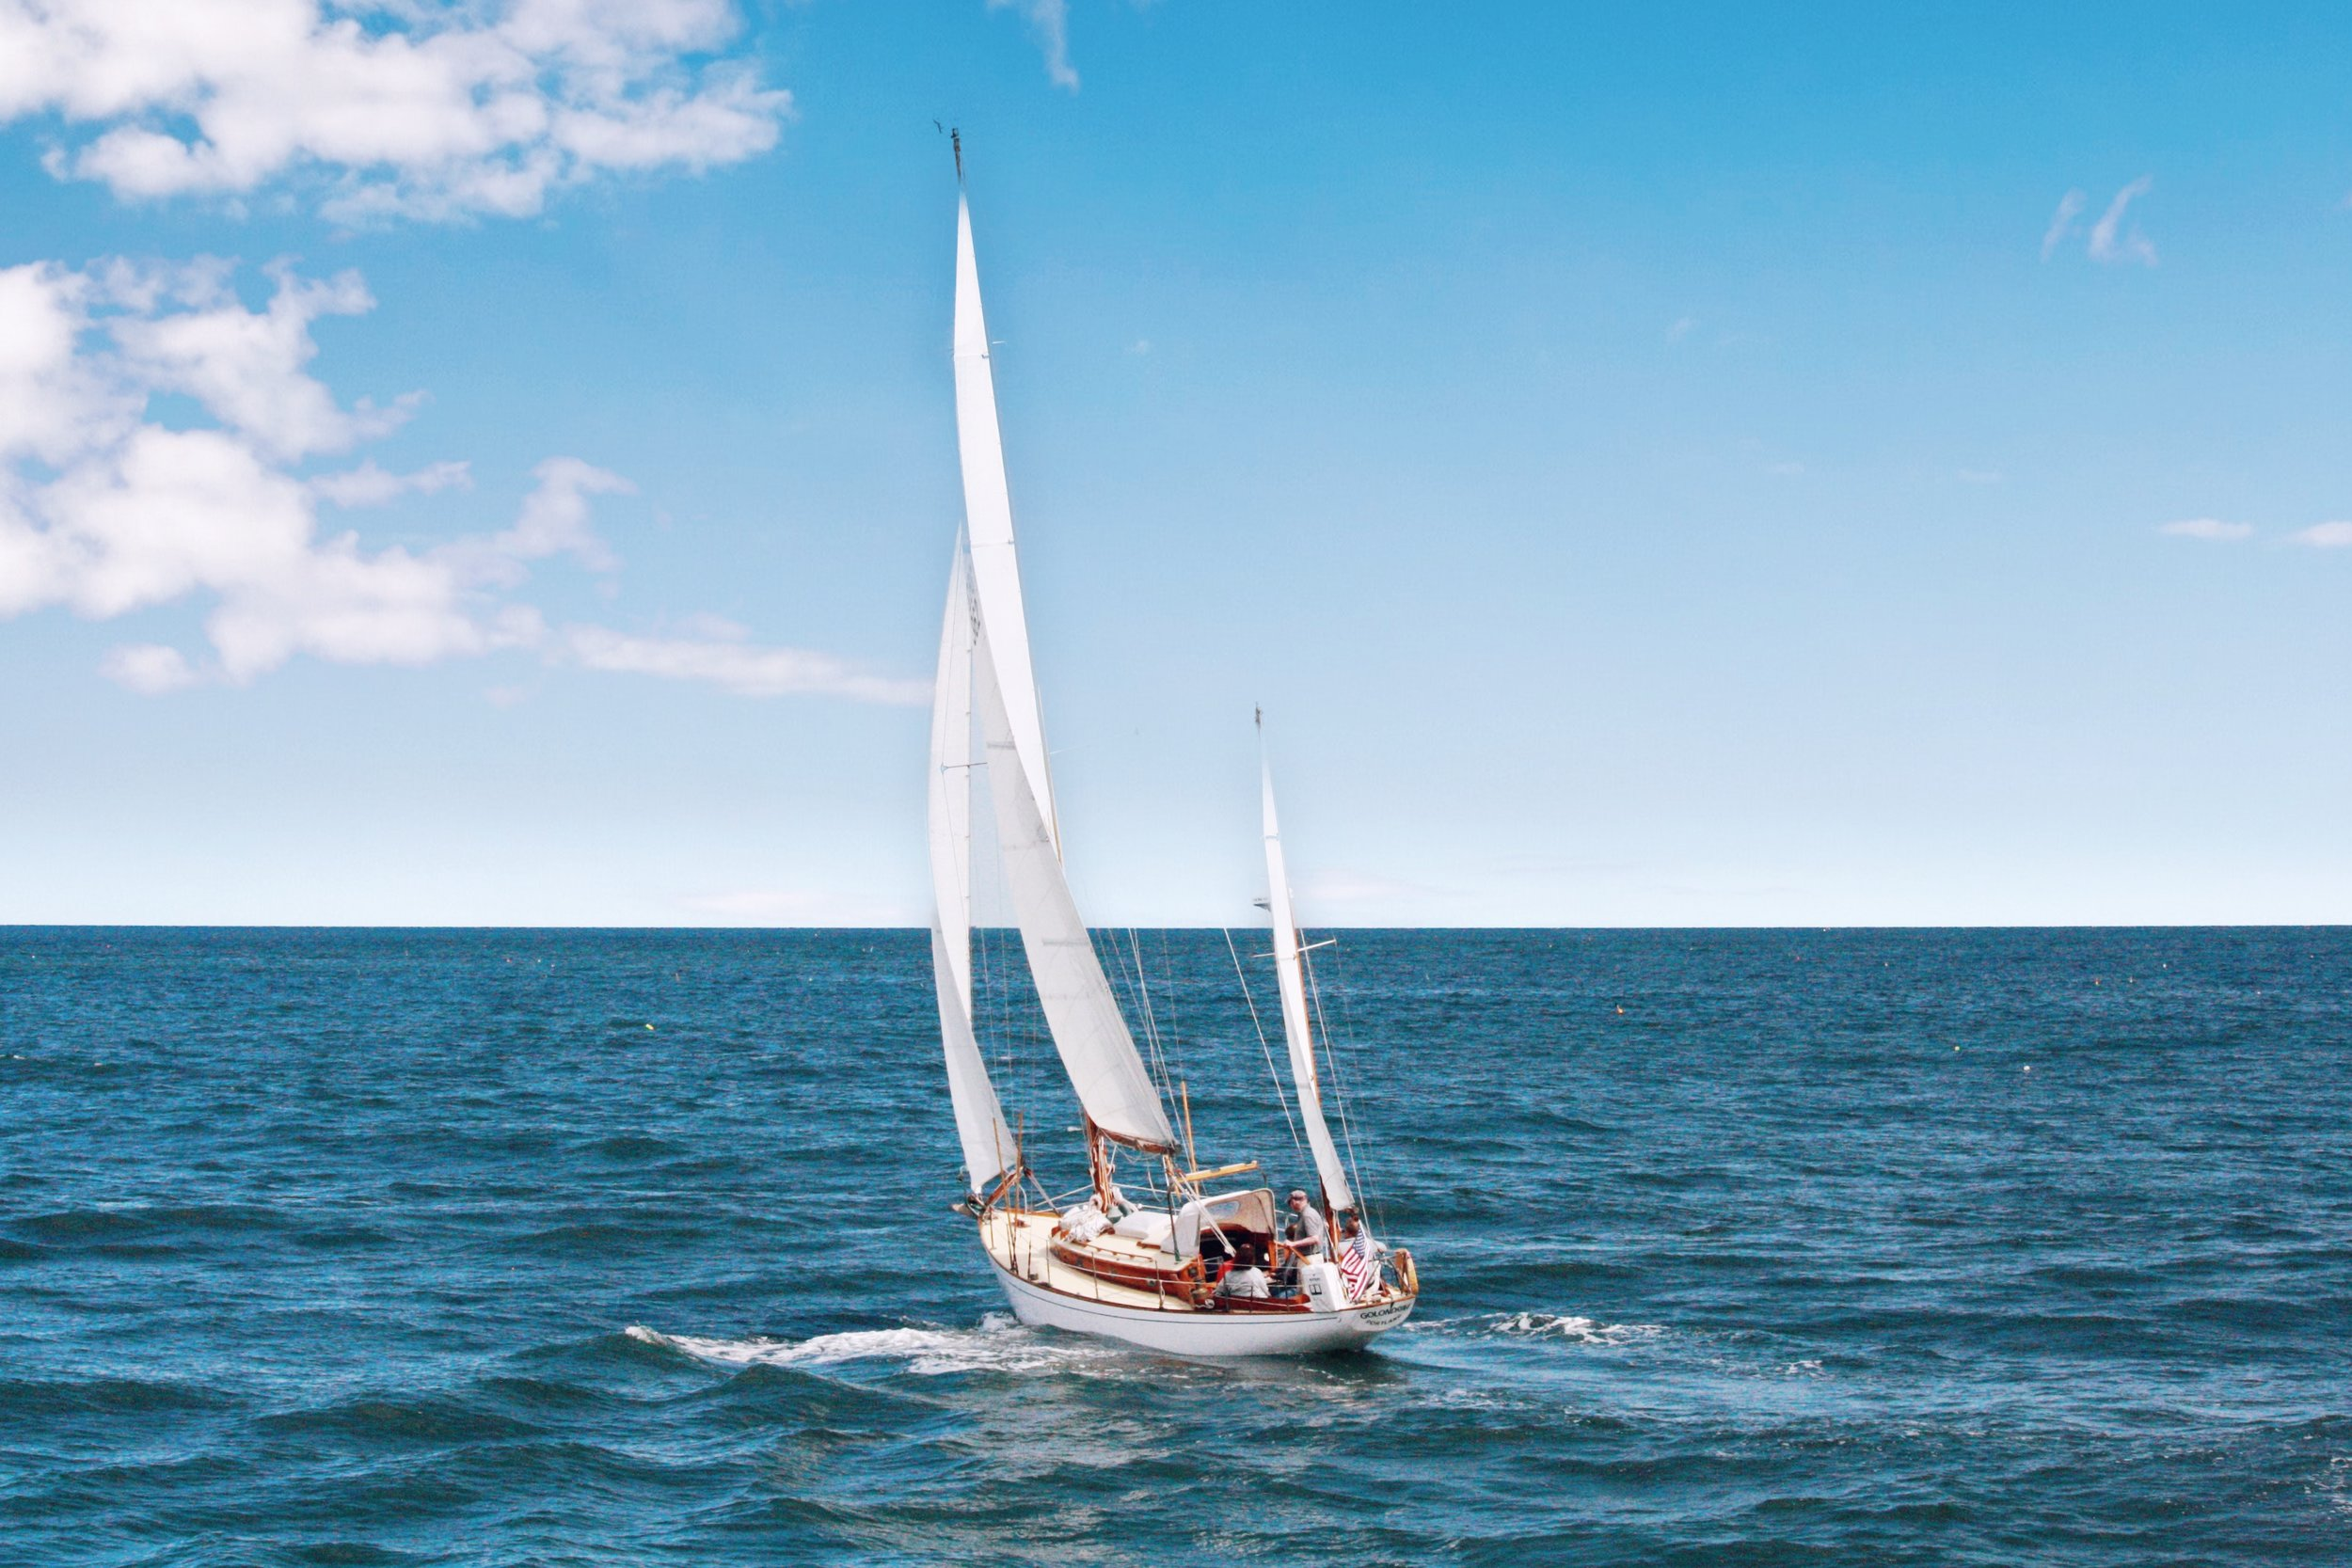 A sailboat underway on the ocean